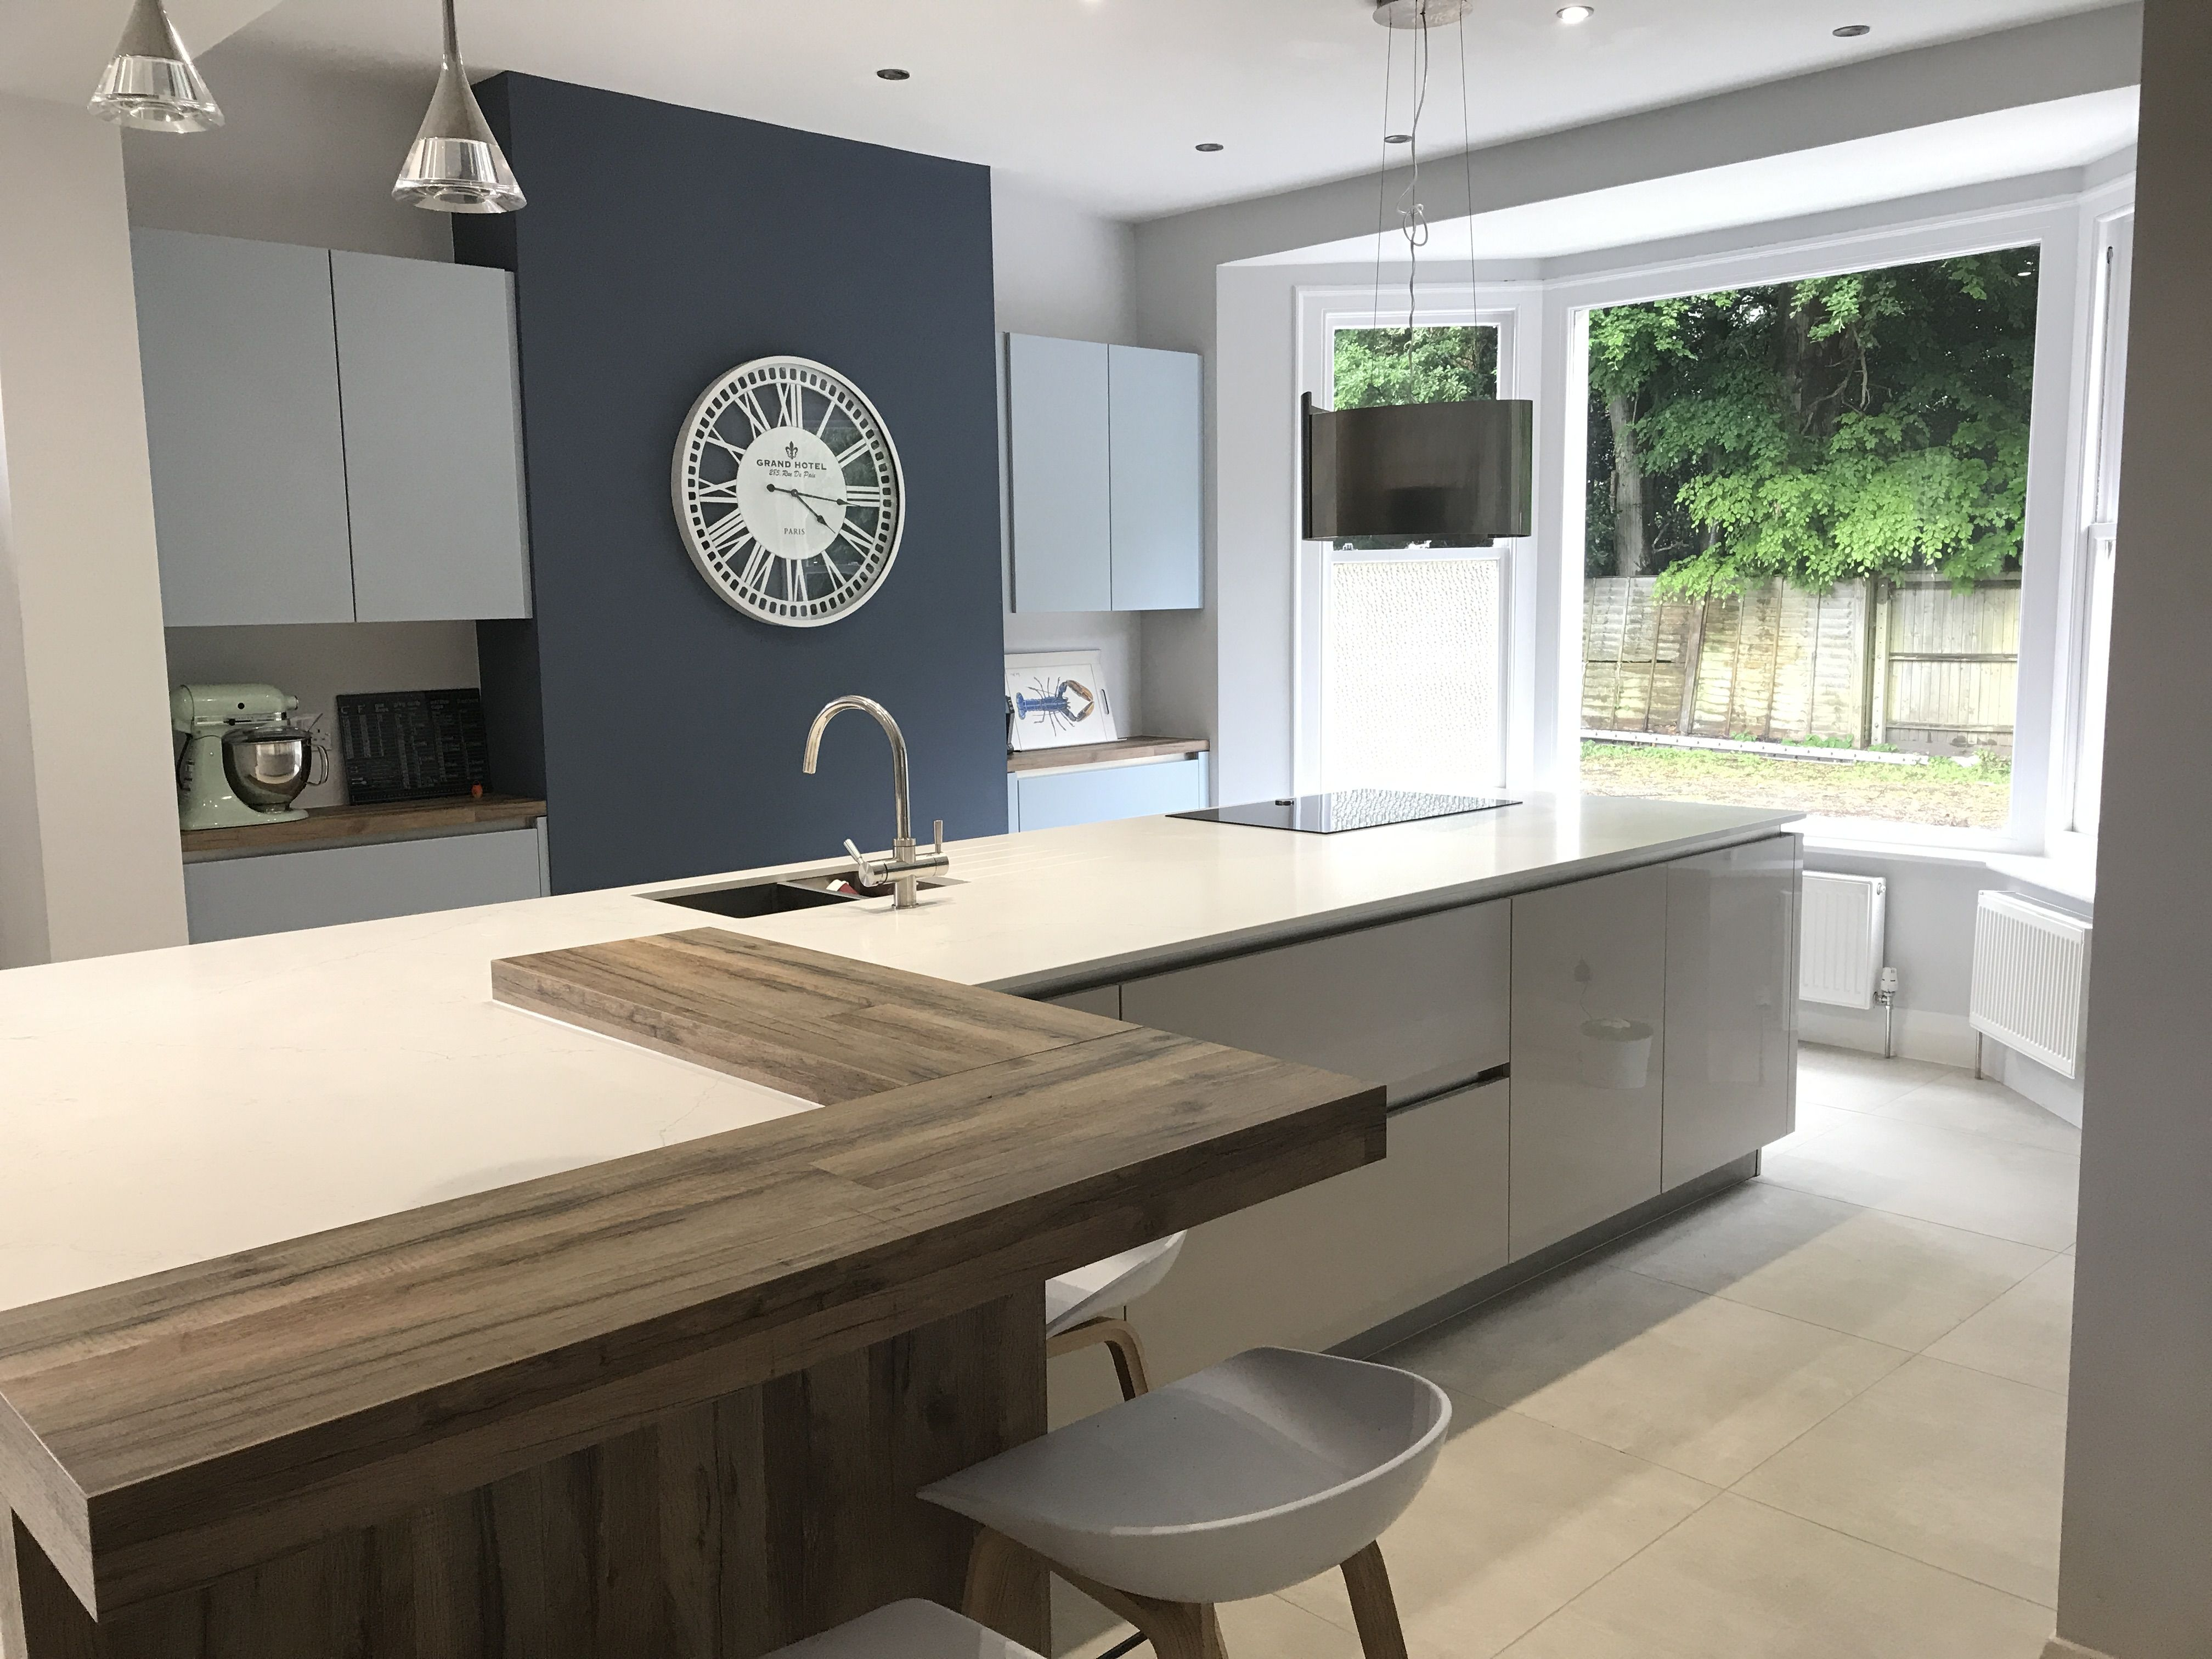 Blue And Taupe Contemporary Kitchen Designed By Smb Interior